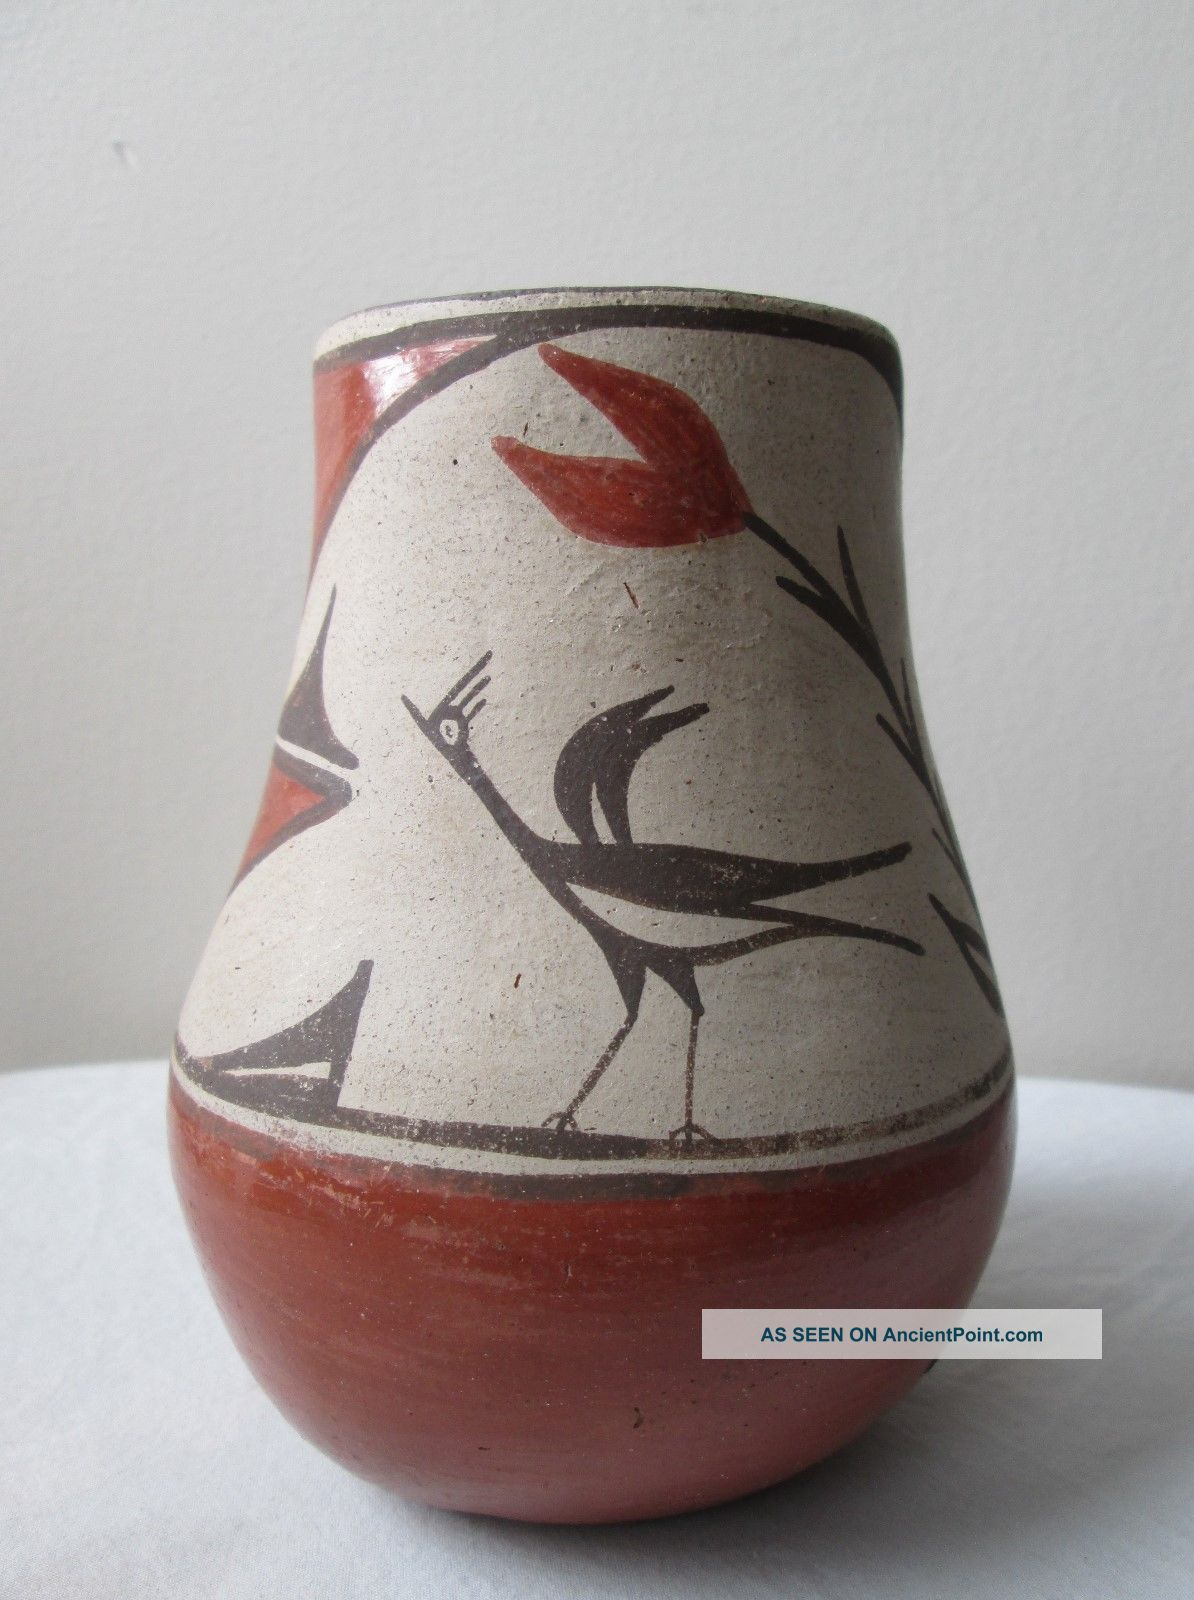 Antique 1930s Polychrome Native American Indian Zia Pueblo Pottery Vase Wit Bird Native American photo